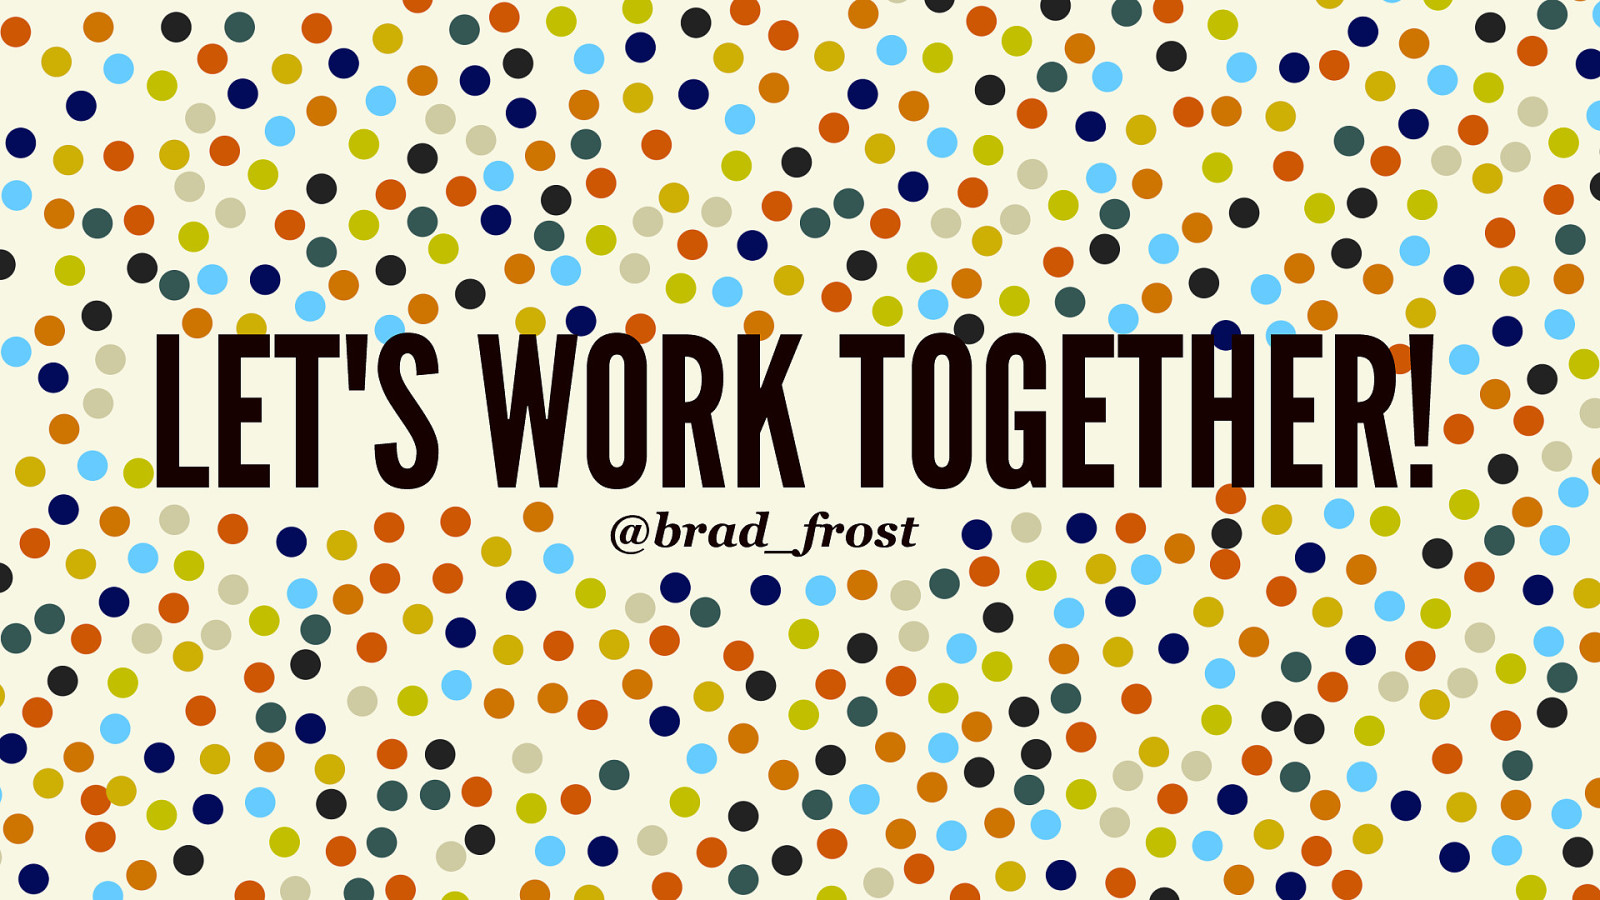 Let's Work Together! by Brad Frost